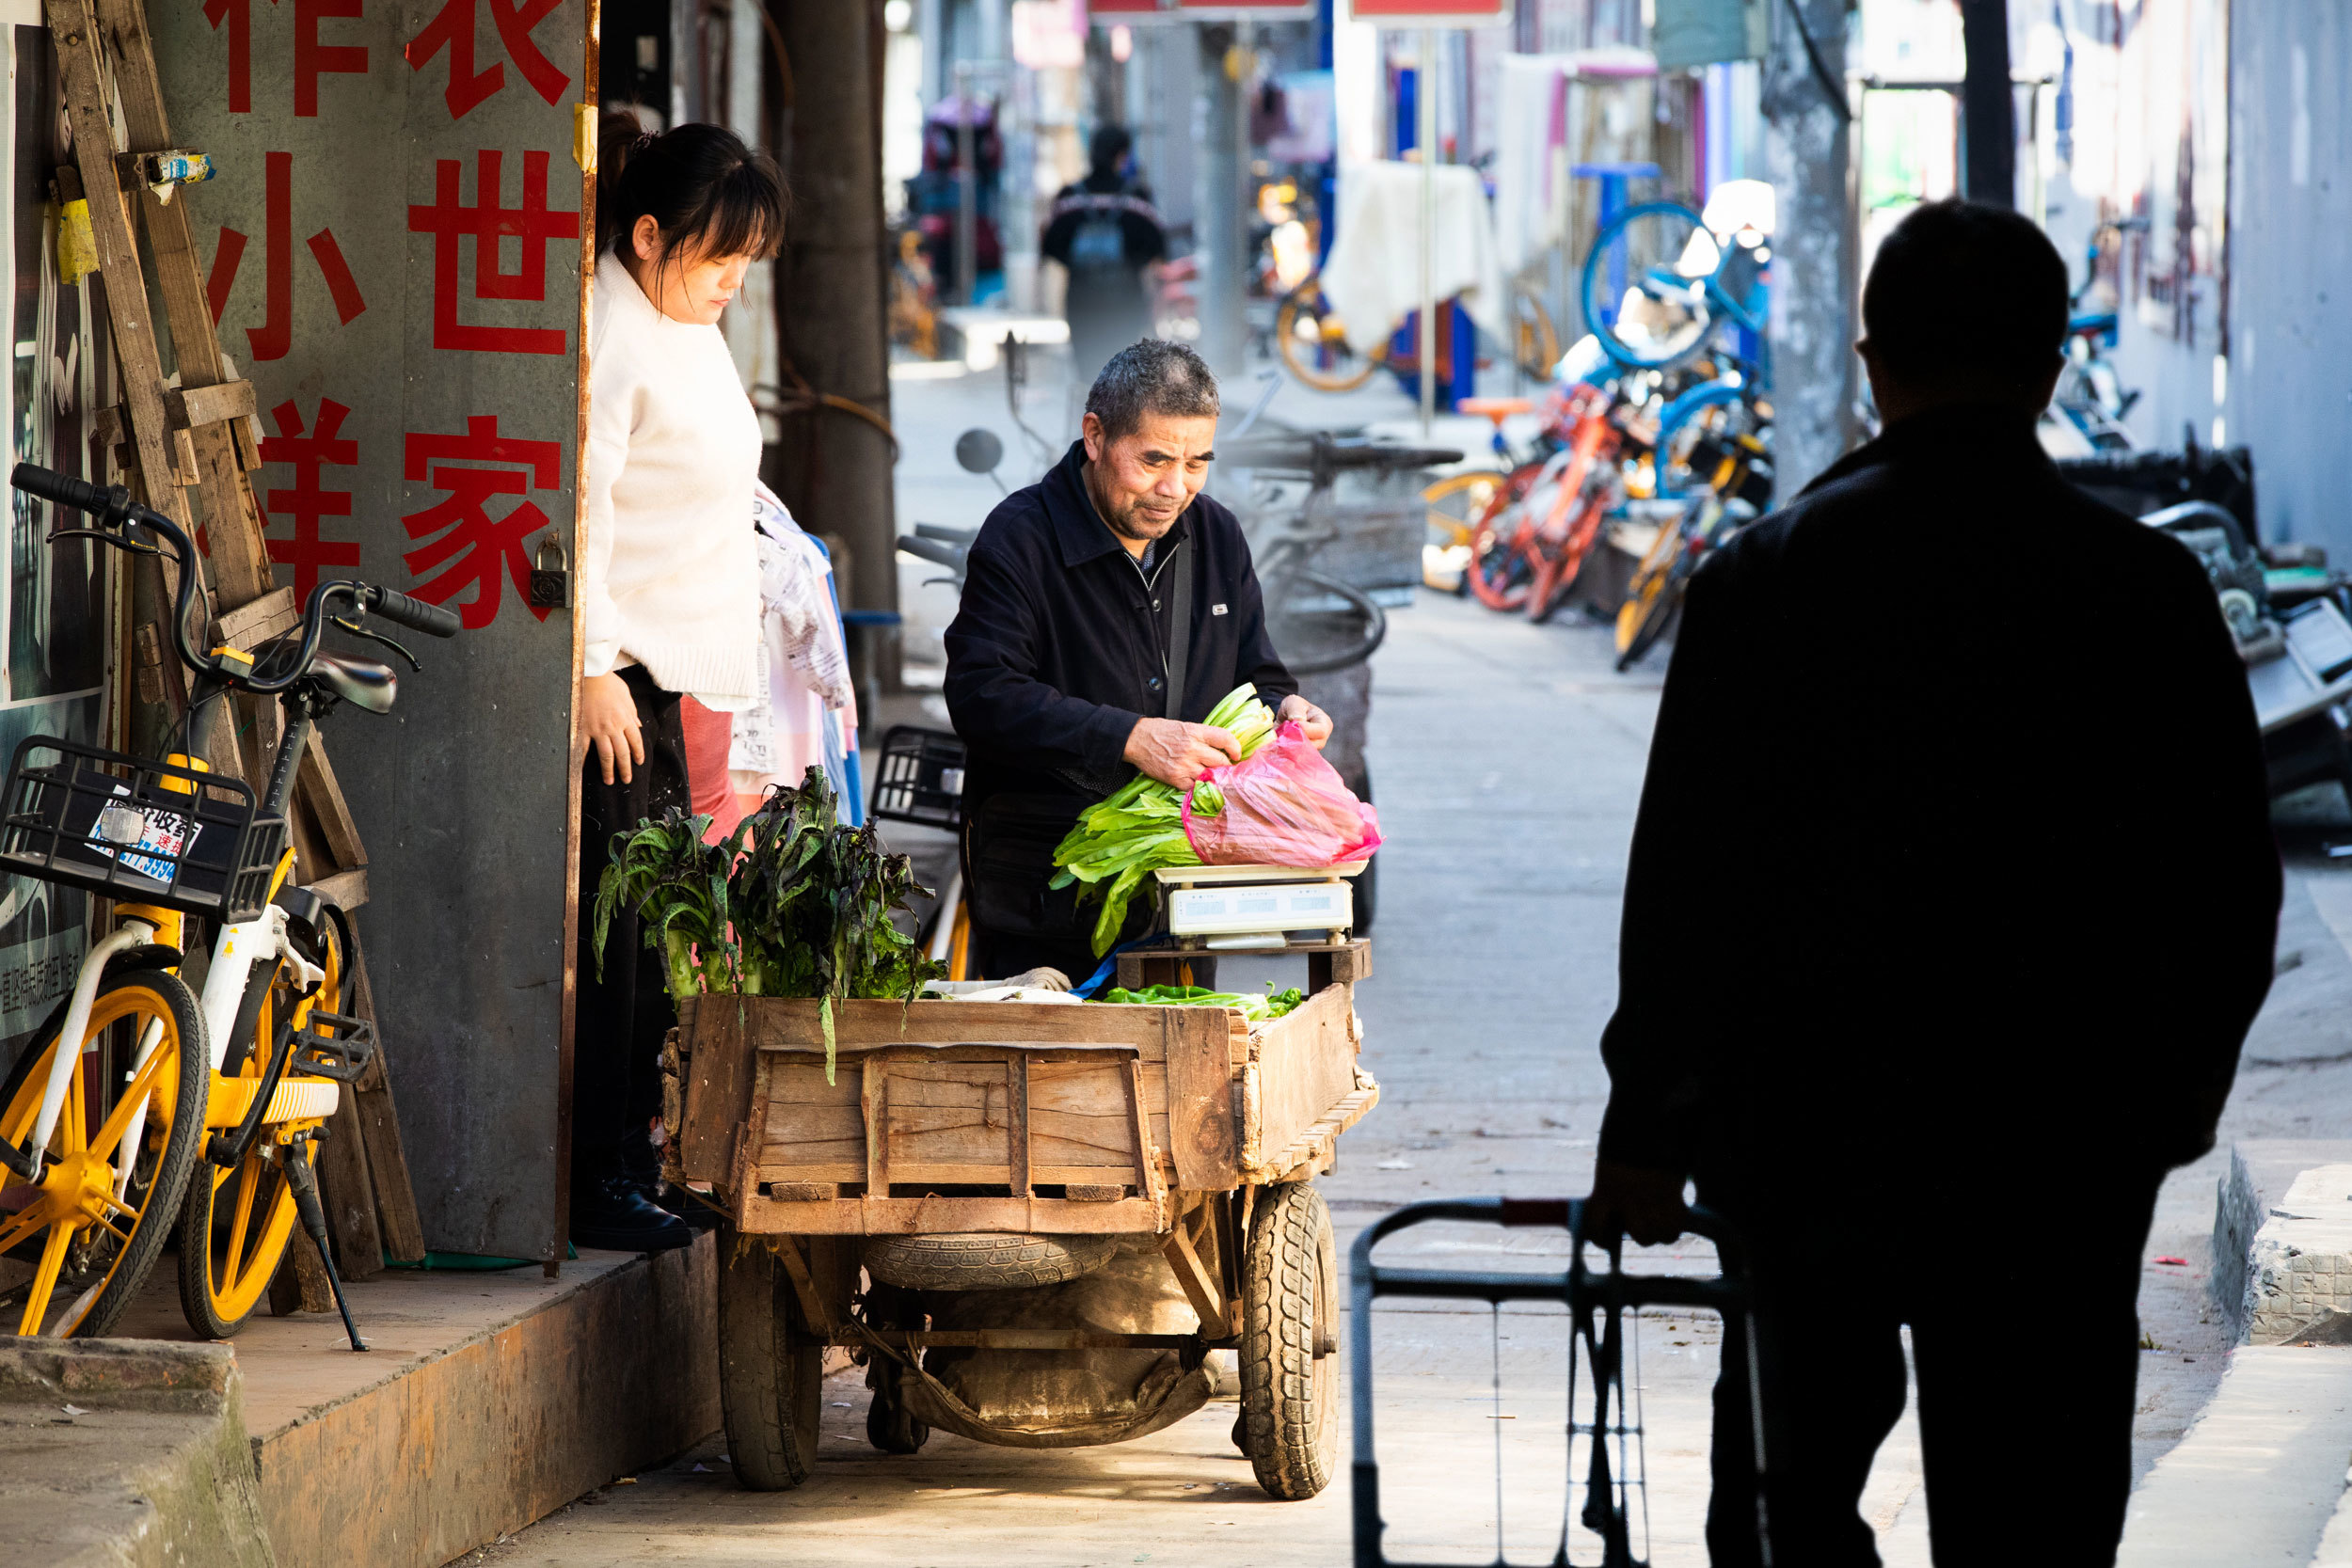 Restaurants and street kiosks are serving up Wuhan's famous breakfasts, lunches and fried noodles again. While masks seem like a forgotten relic in the back lanes of the city's garment district, there are still signs of anxiety about COVID-19. (Saša Petricic/CBC)